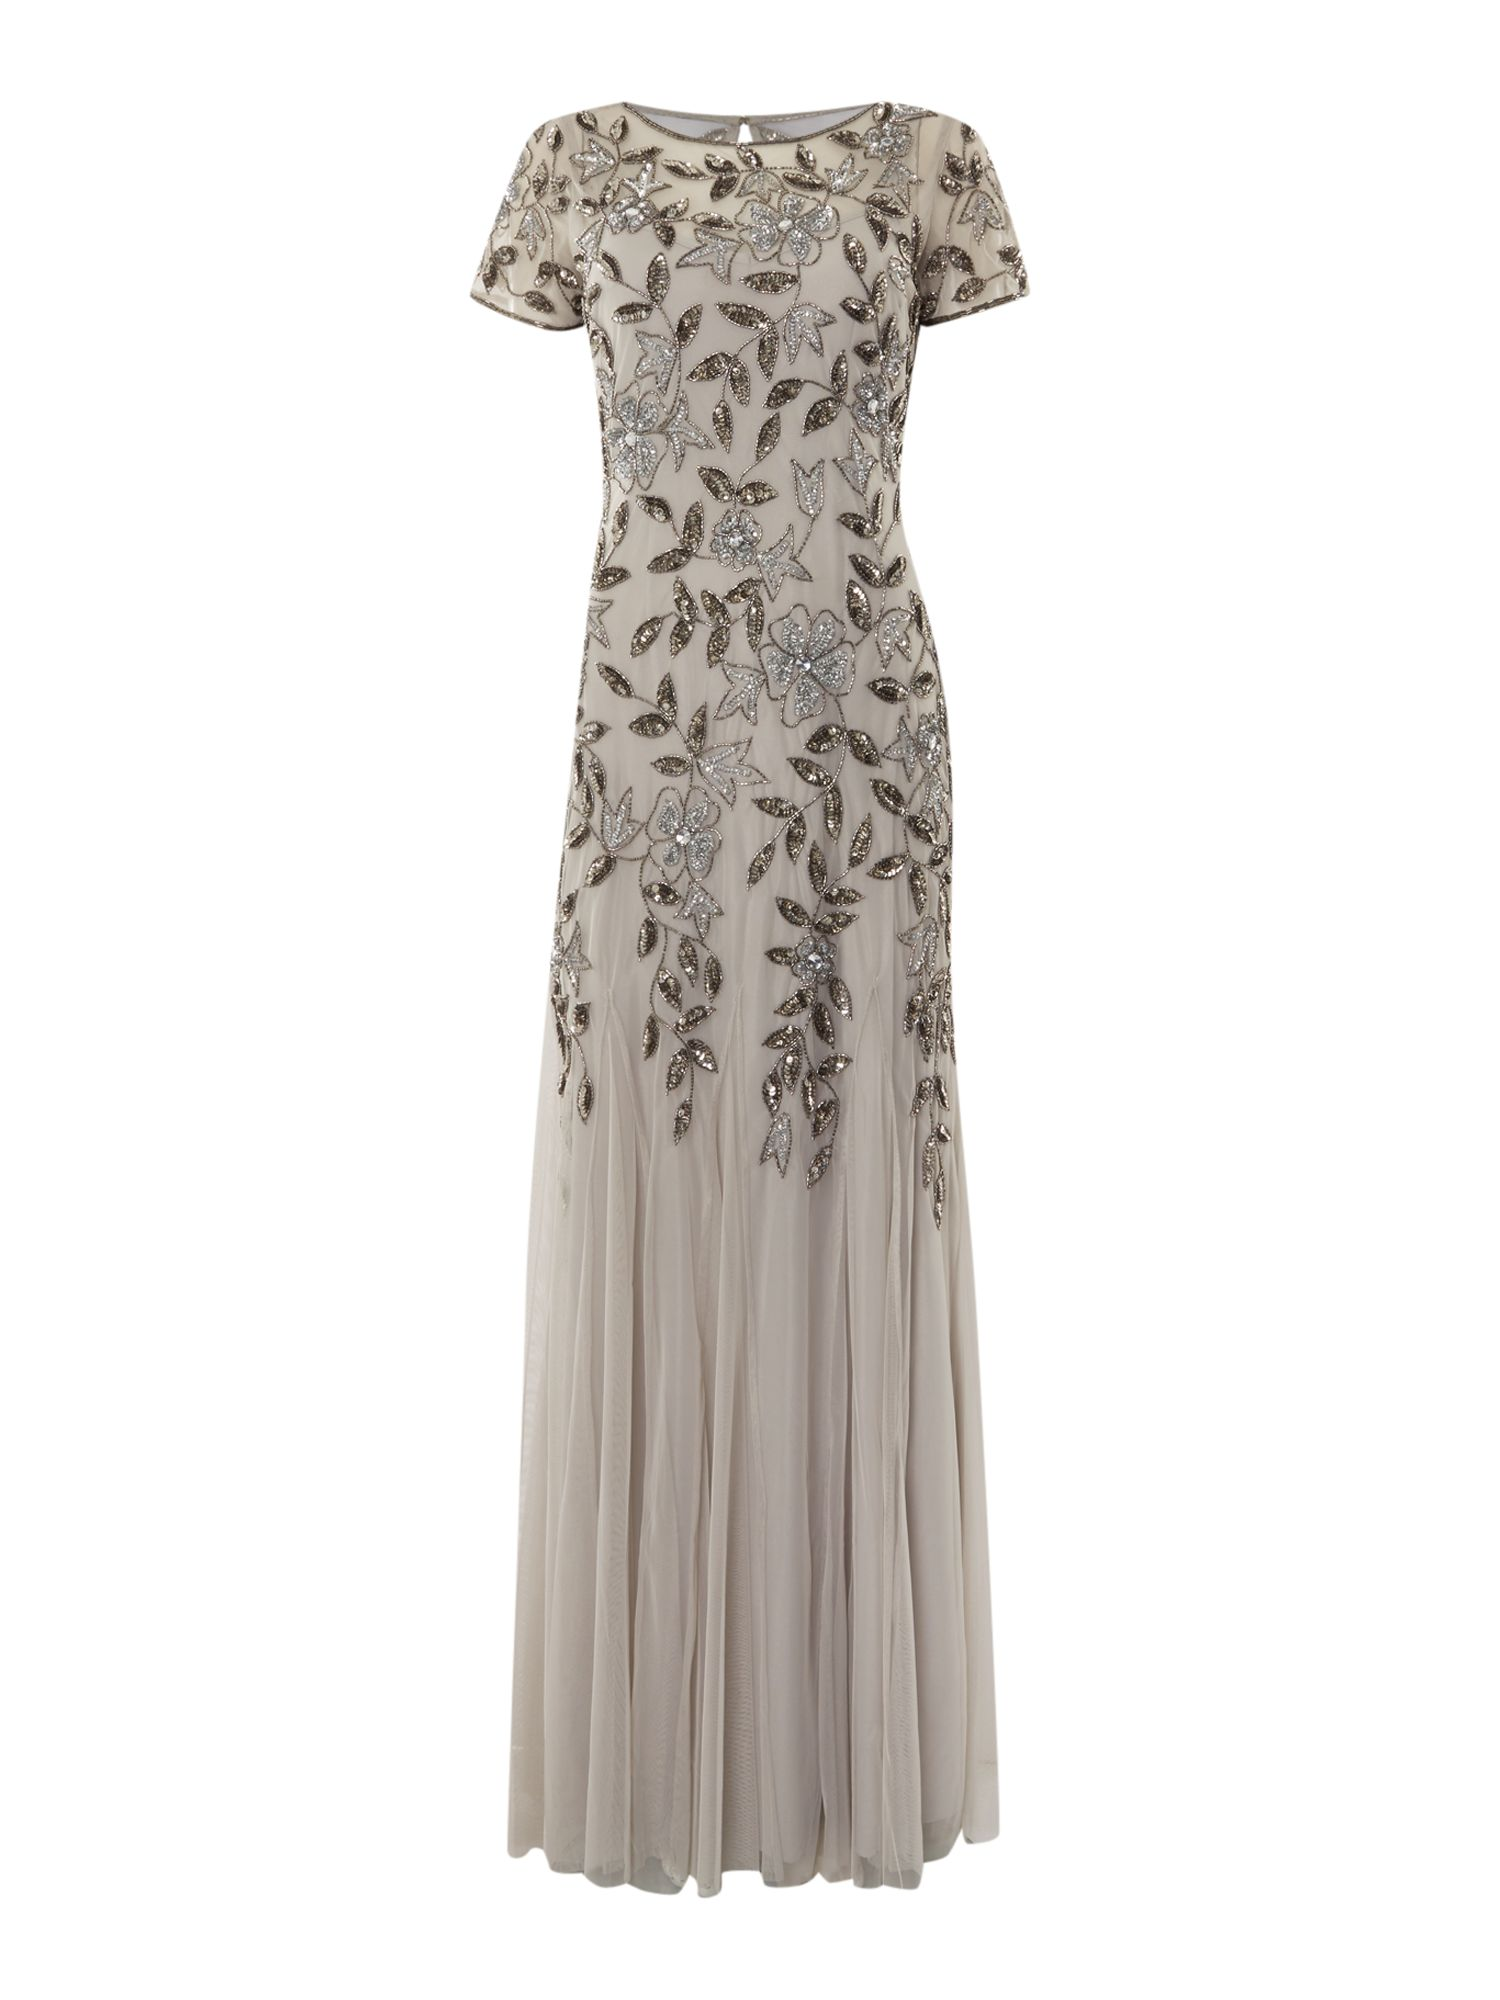 1920s Style Dresses, Flapper Dresses Adrianna Papell Evening long cap sleeve beaded gown £210.00 AT vintagedancer.com